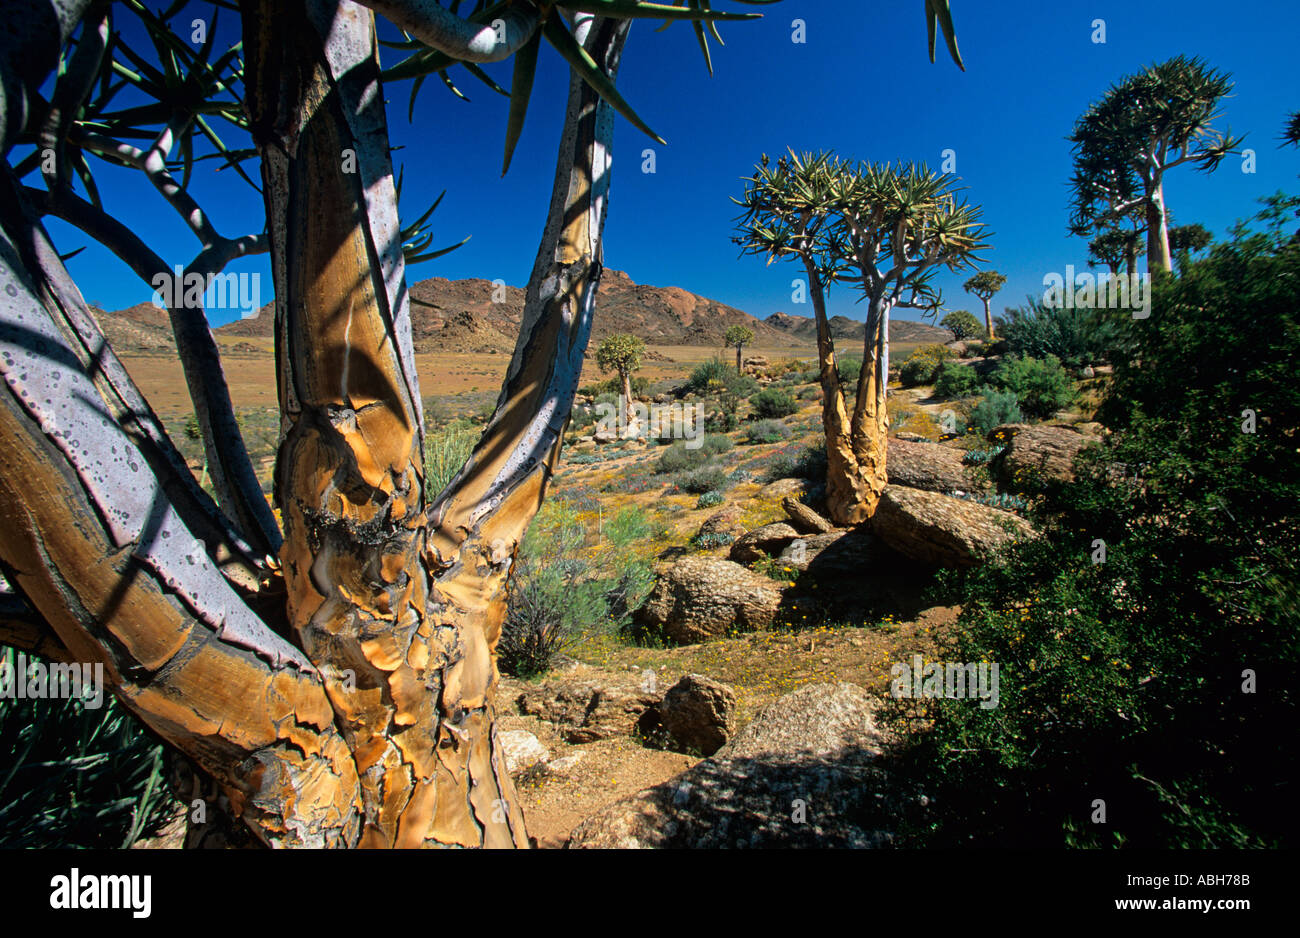 Quiver trees Aloidendron dichotomum growing in Goegap Nature reserve in Namaqualand Southern Africa - Stock Image